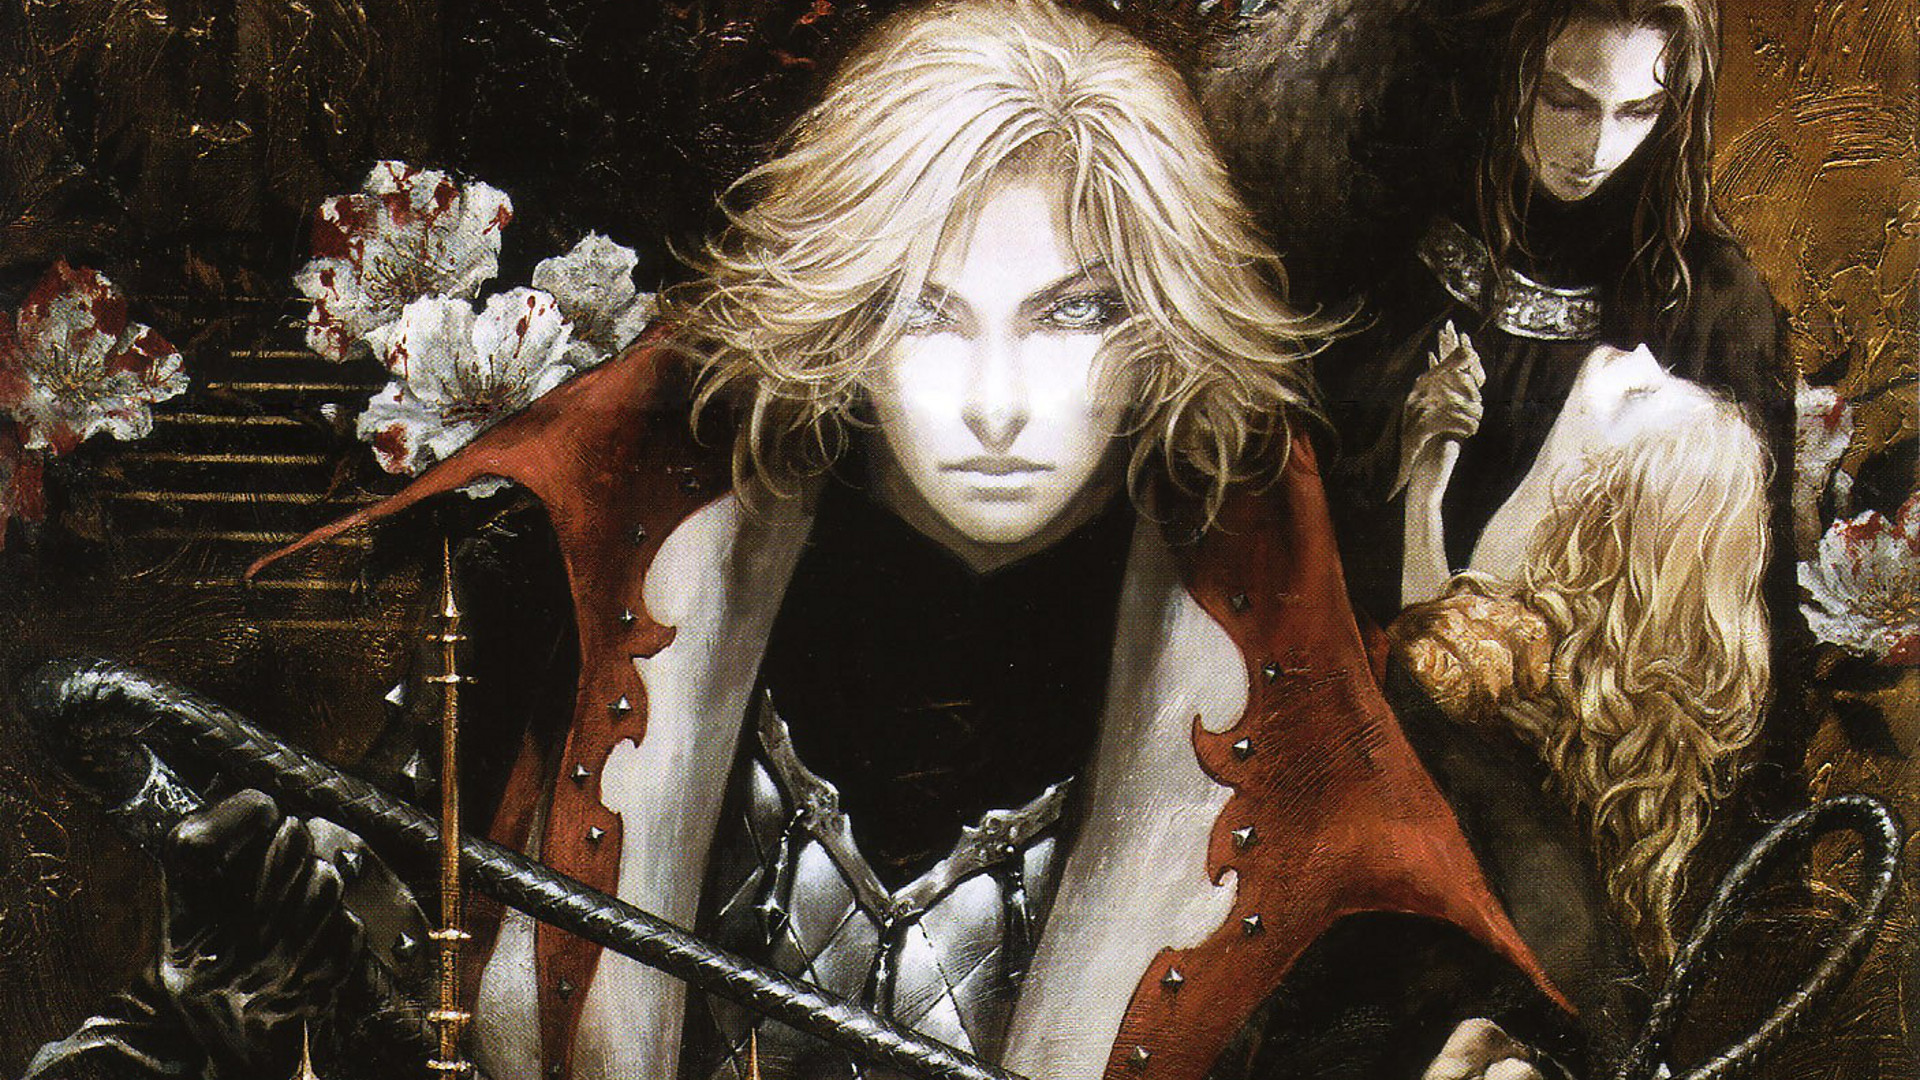 Castlevania Lament Of Innocence Details Launchbox Games